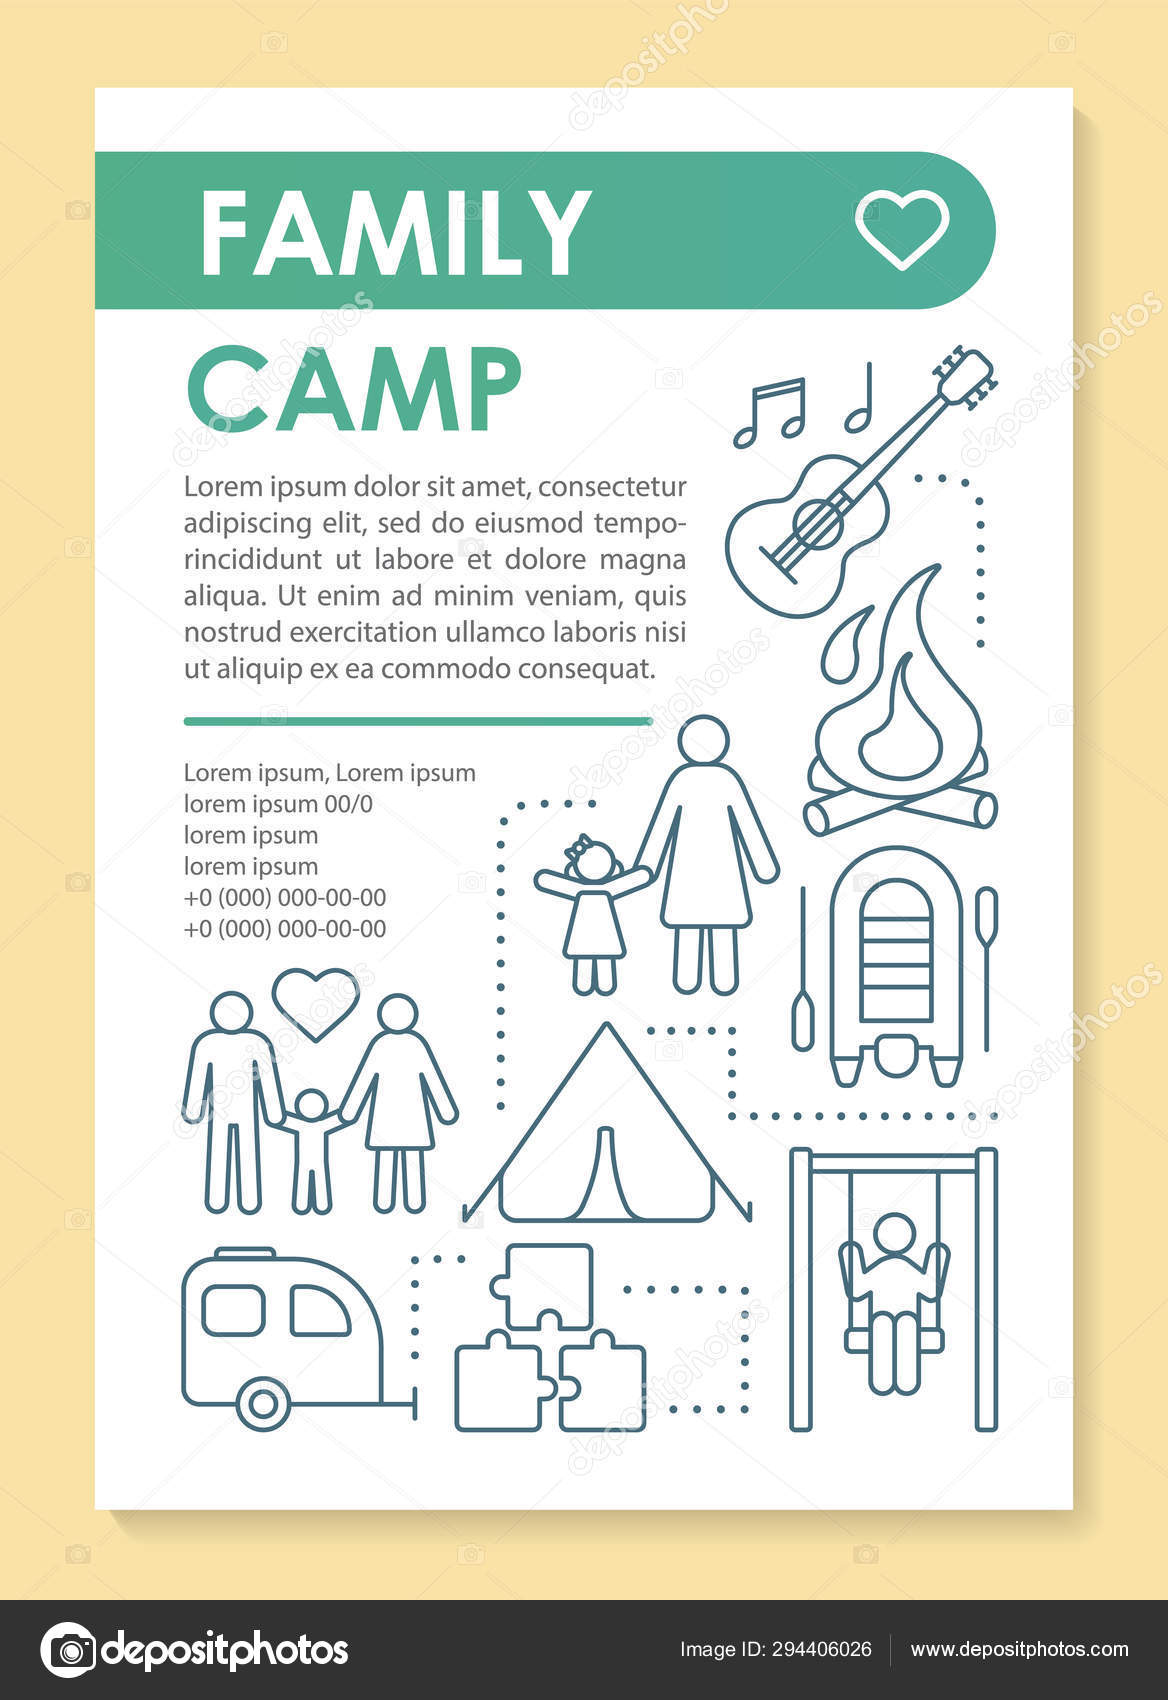 Country, outdoor family camping trip brochure template